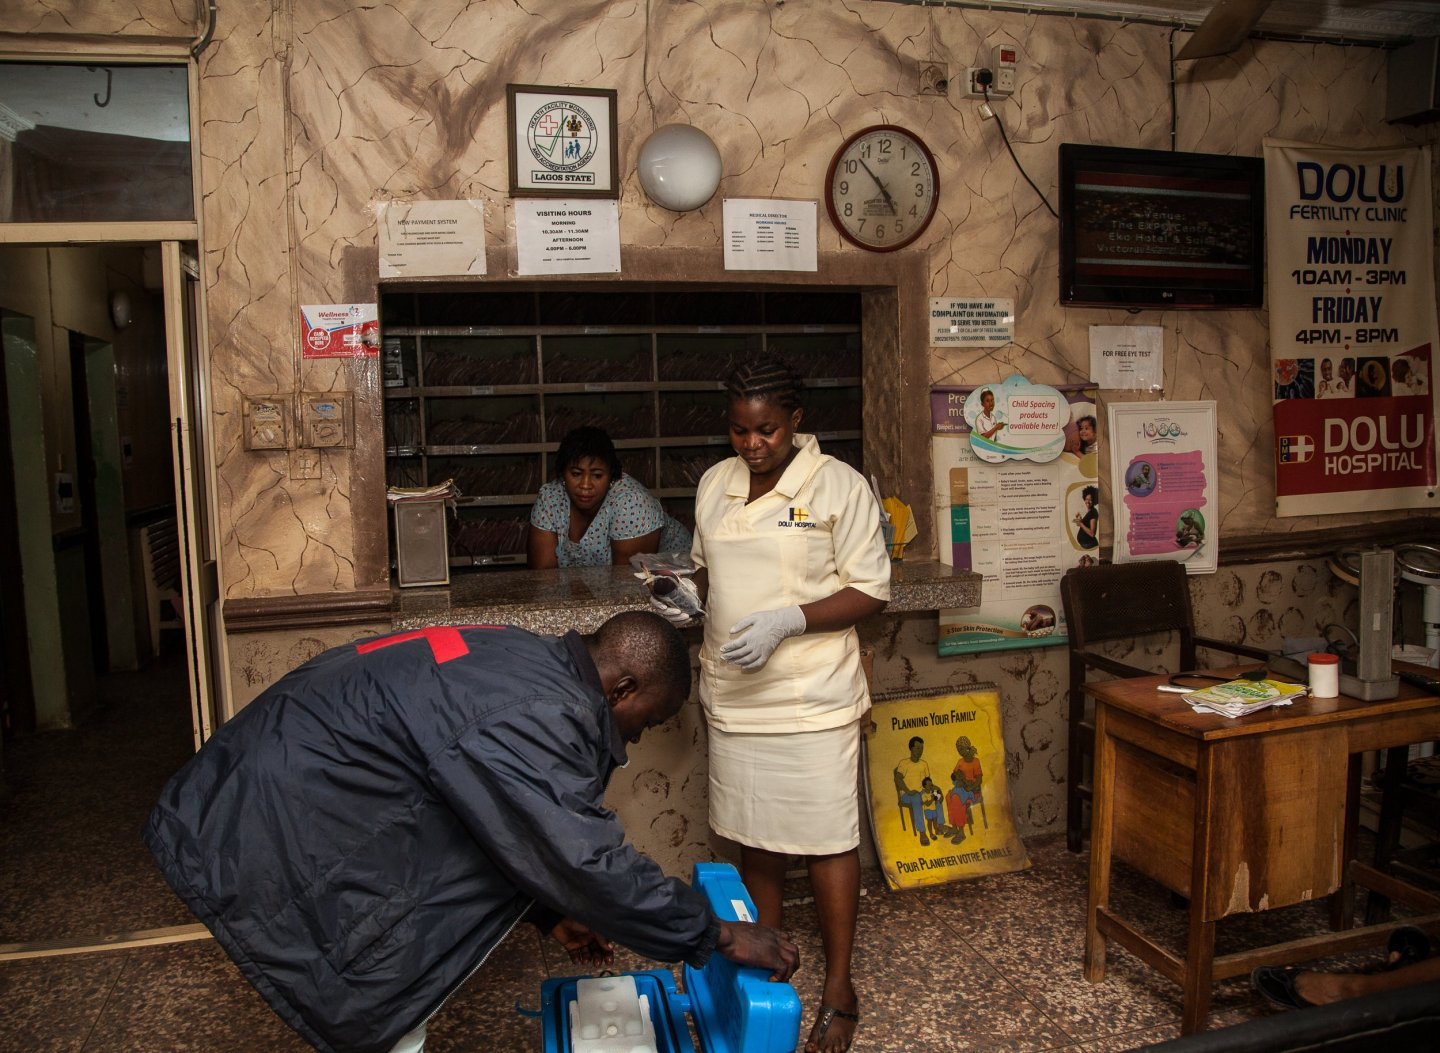 A LifeBank driver delivers blood to a hospital in Lagos, Nigeria. LifeBank is seeking to address the city's blood shortage by connecting blood banks and hospitals, as well as organizing blood donation drives. ADEOLA OLAGUNJU FOR NEWSWEEK